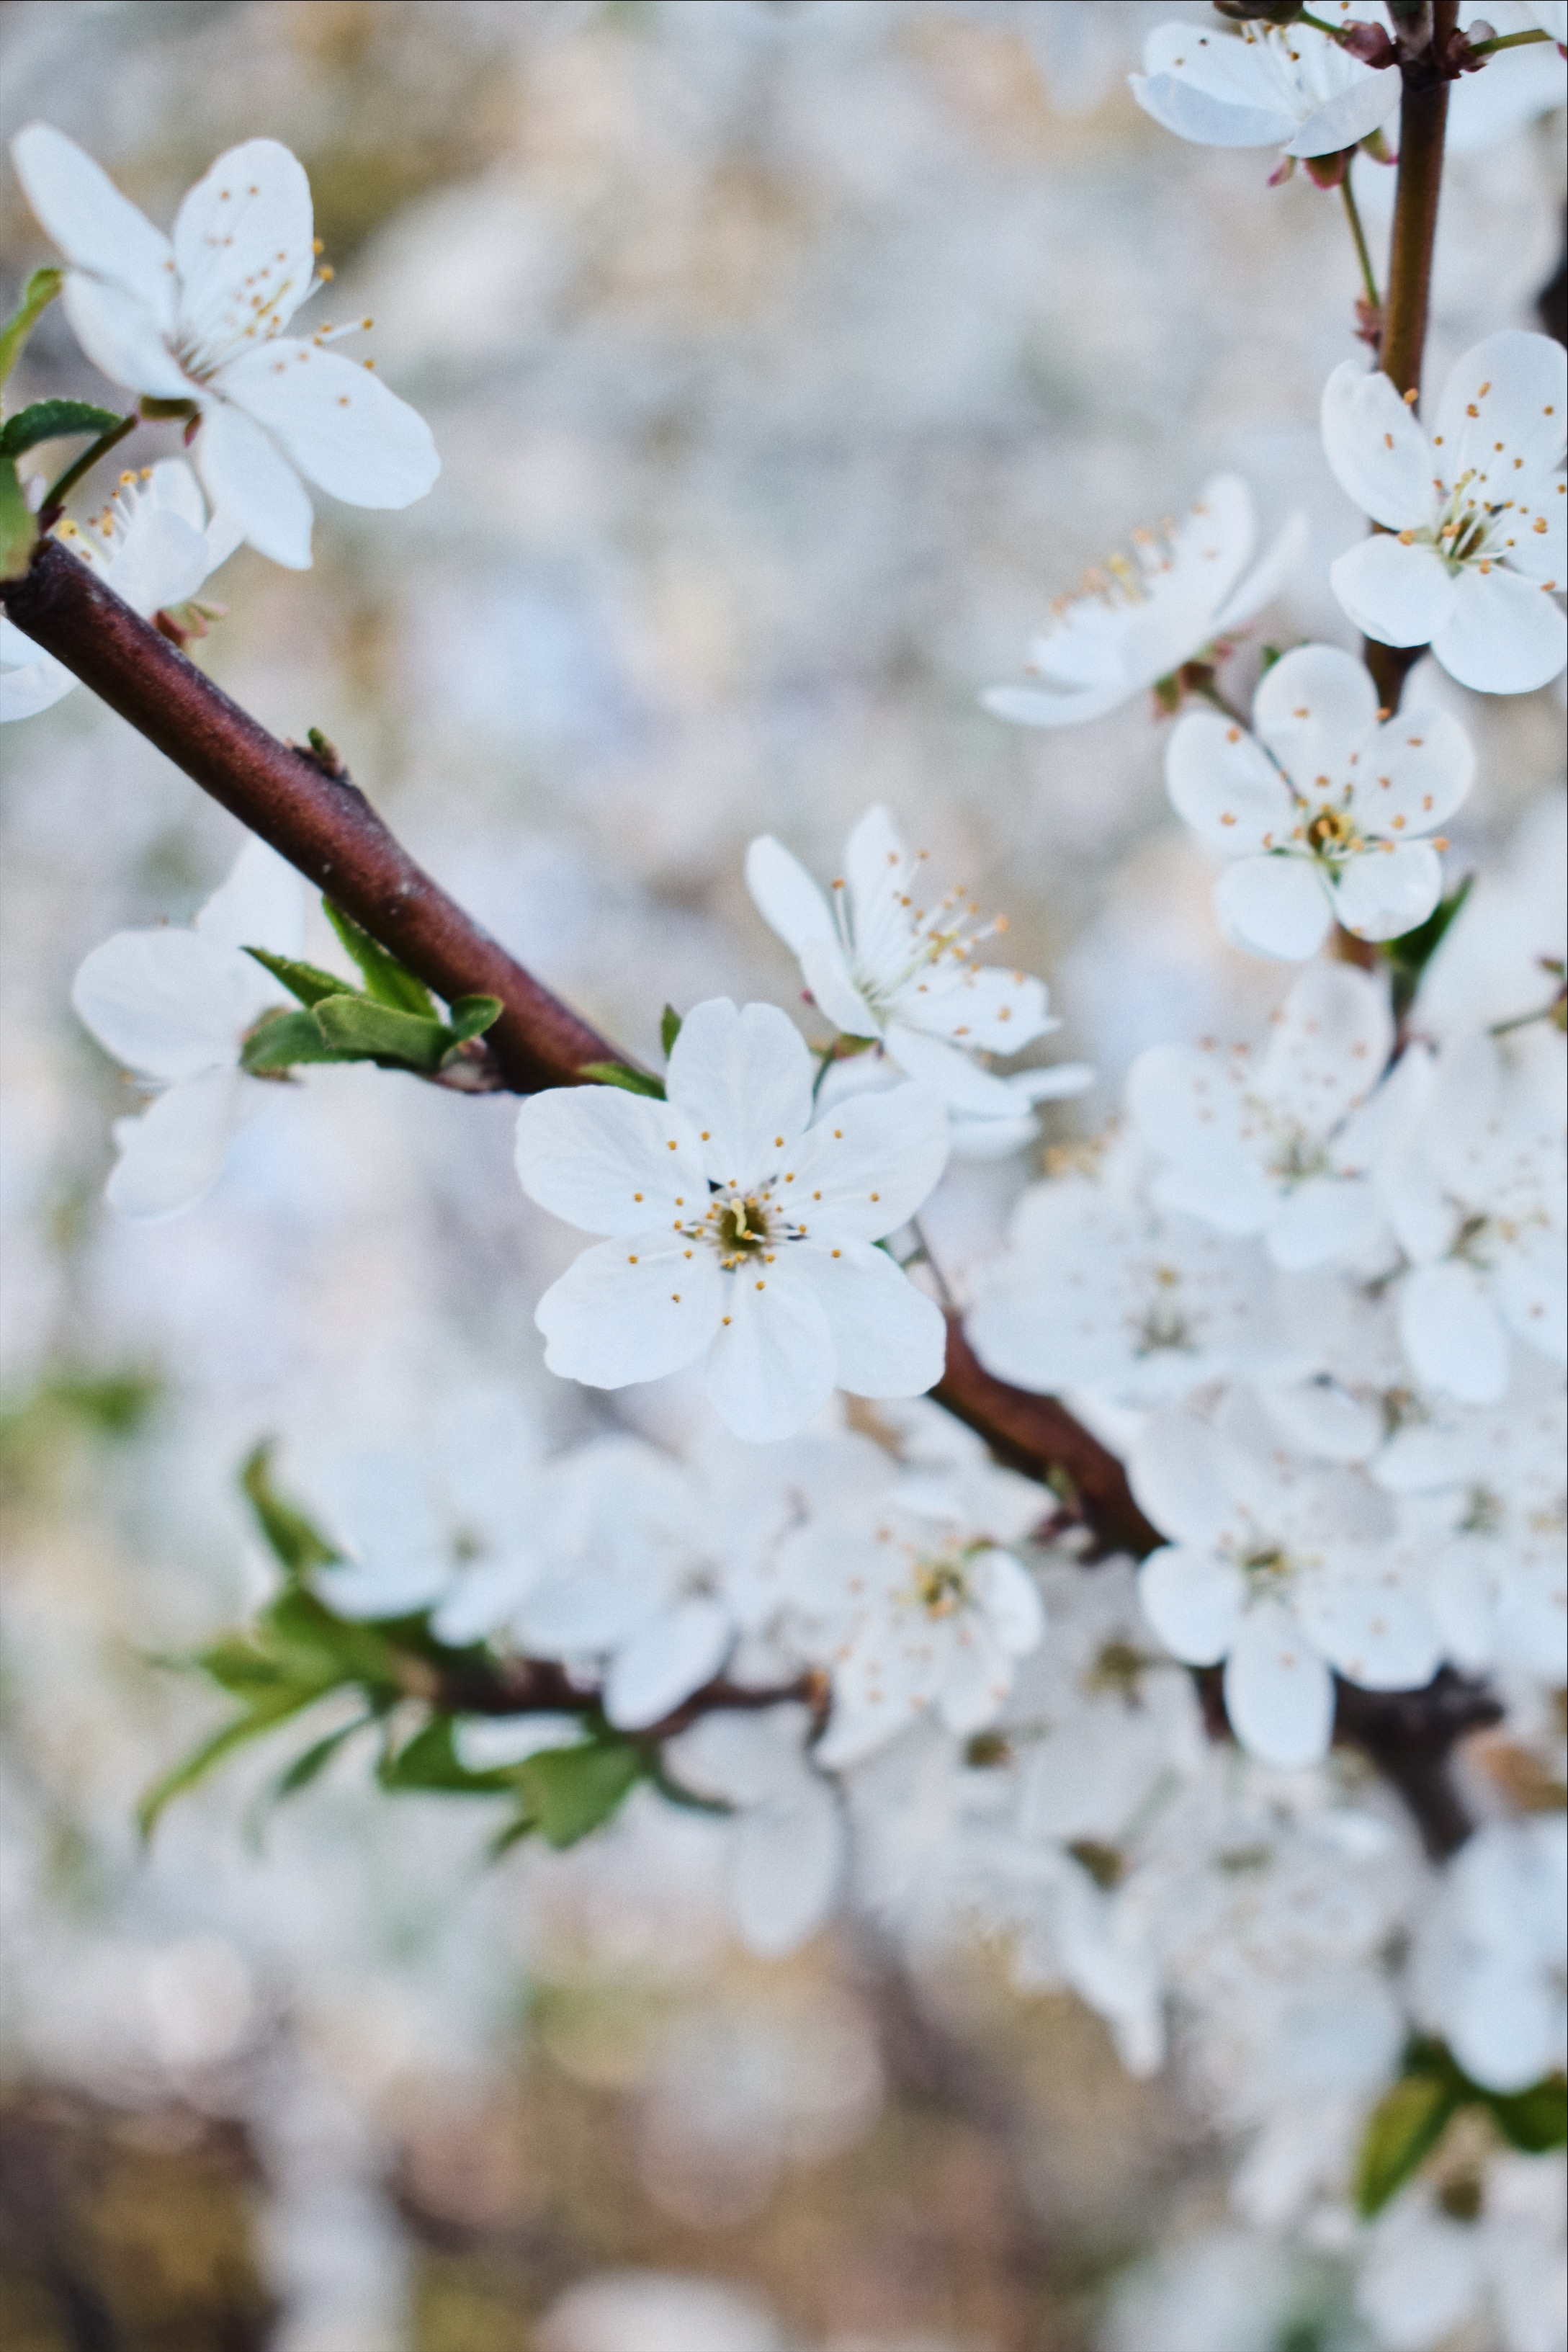 White flower on a twig